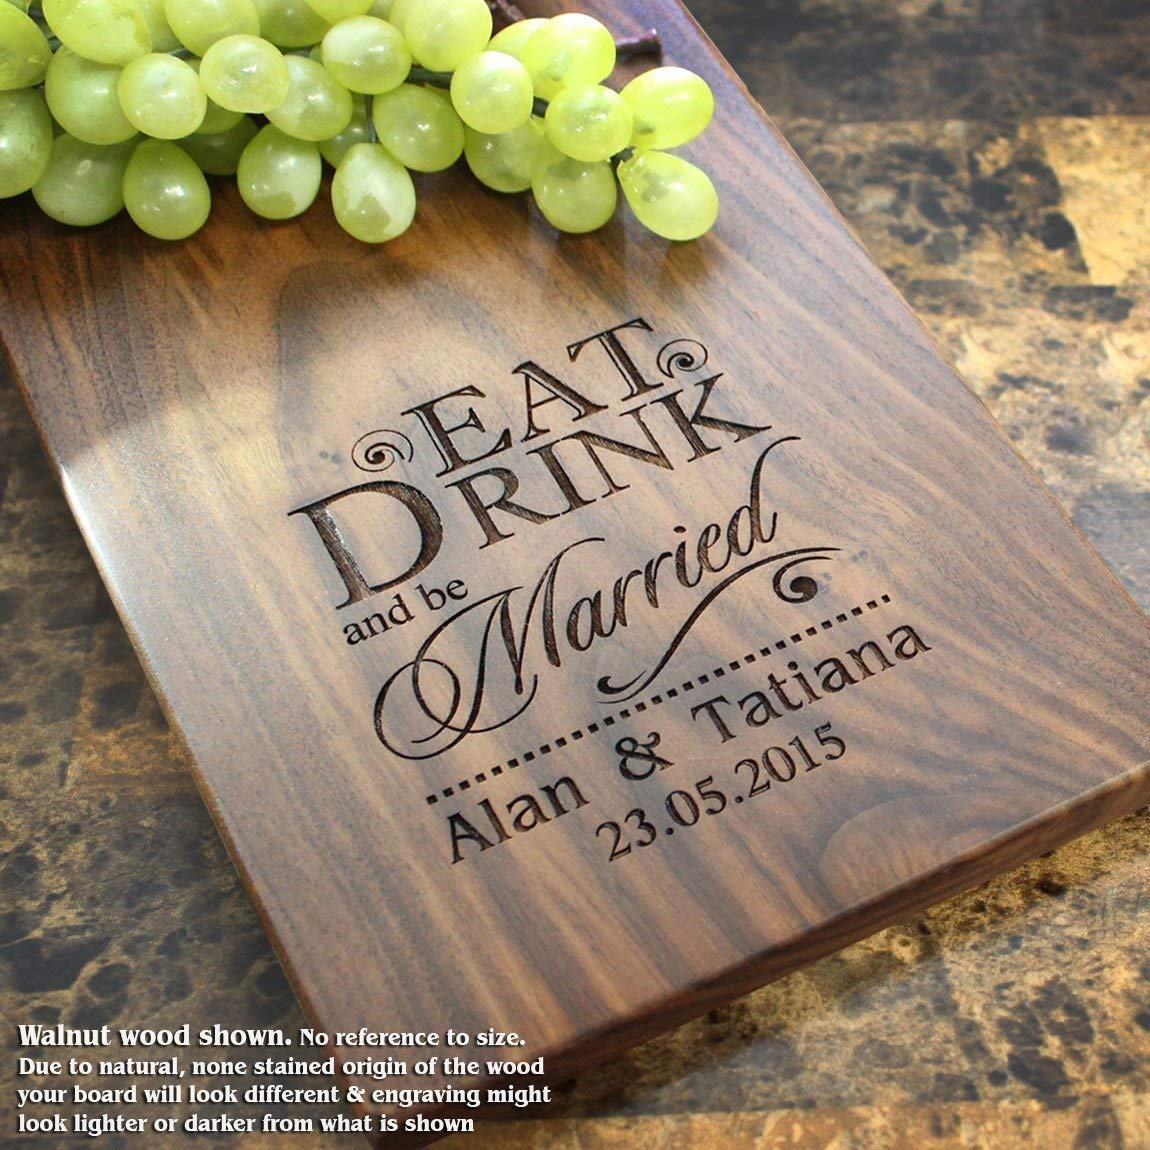 Personalized Cheese Board, Engraved Cheese Plate - Wedding Gift, Anniversary Gifts, Housewarming Gift, Birthday Gift, Corporate Gift, Award. #012